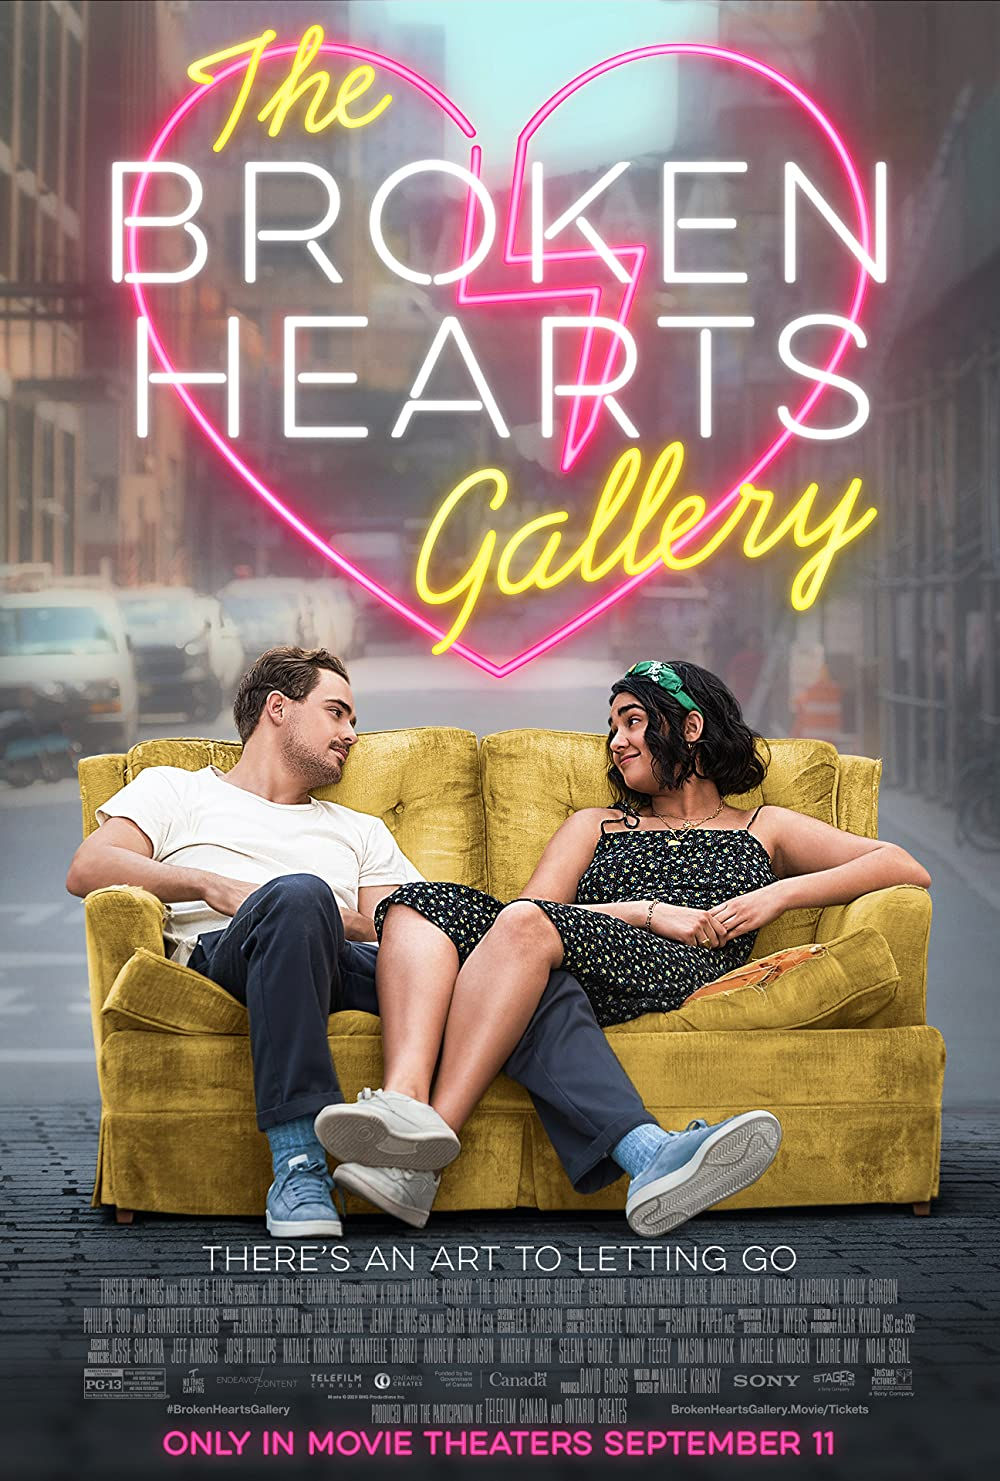 The Broken Hearts Gallery 2020 Hindi ORG Dual Audio 720p BluRay ESub 1GB x264 AAC